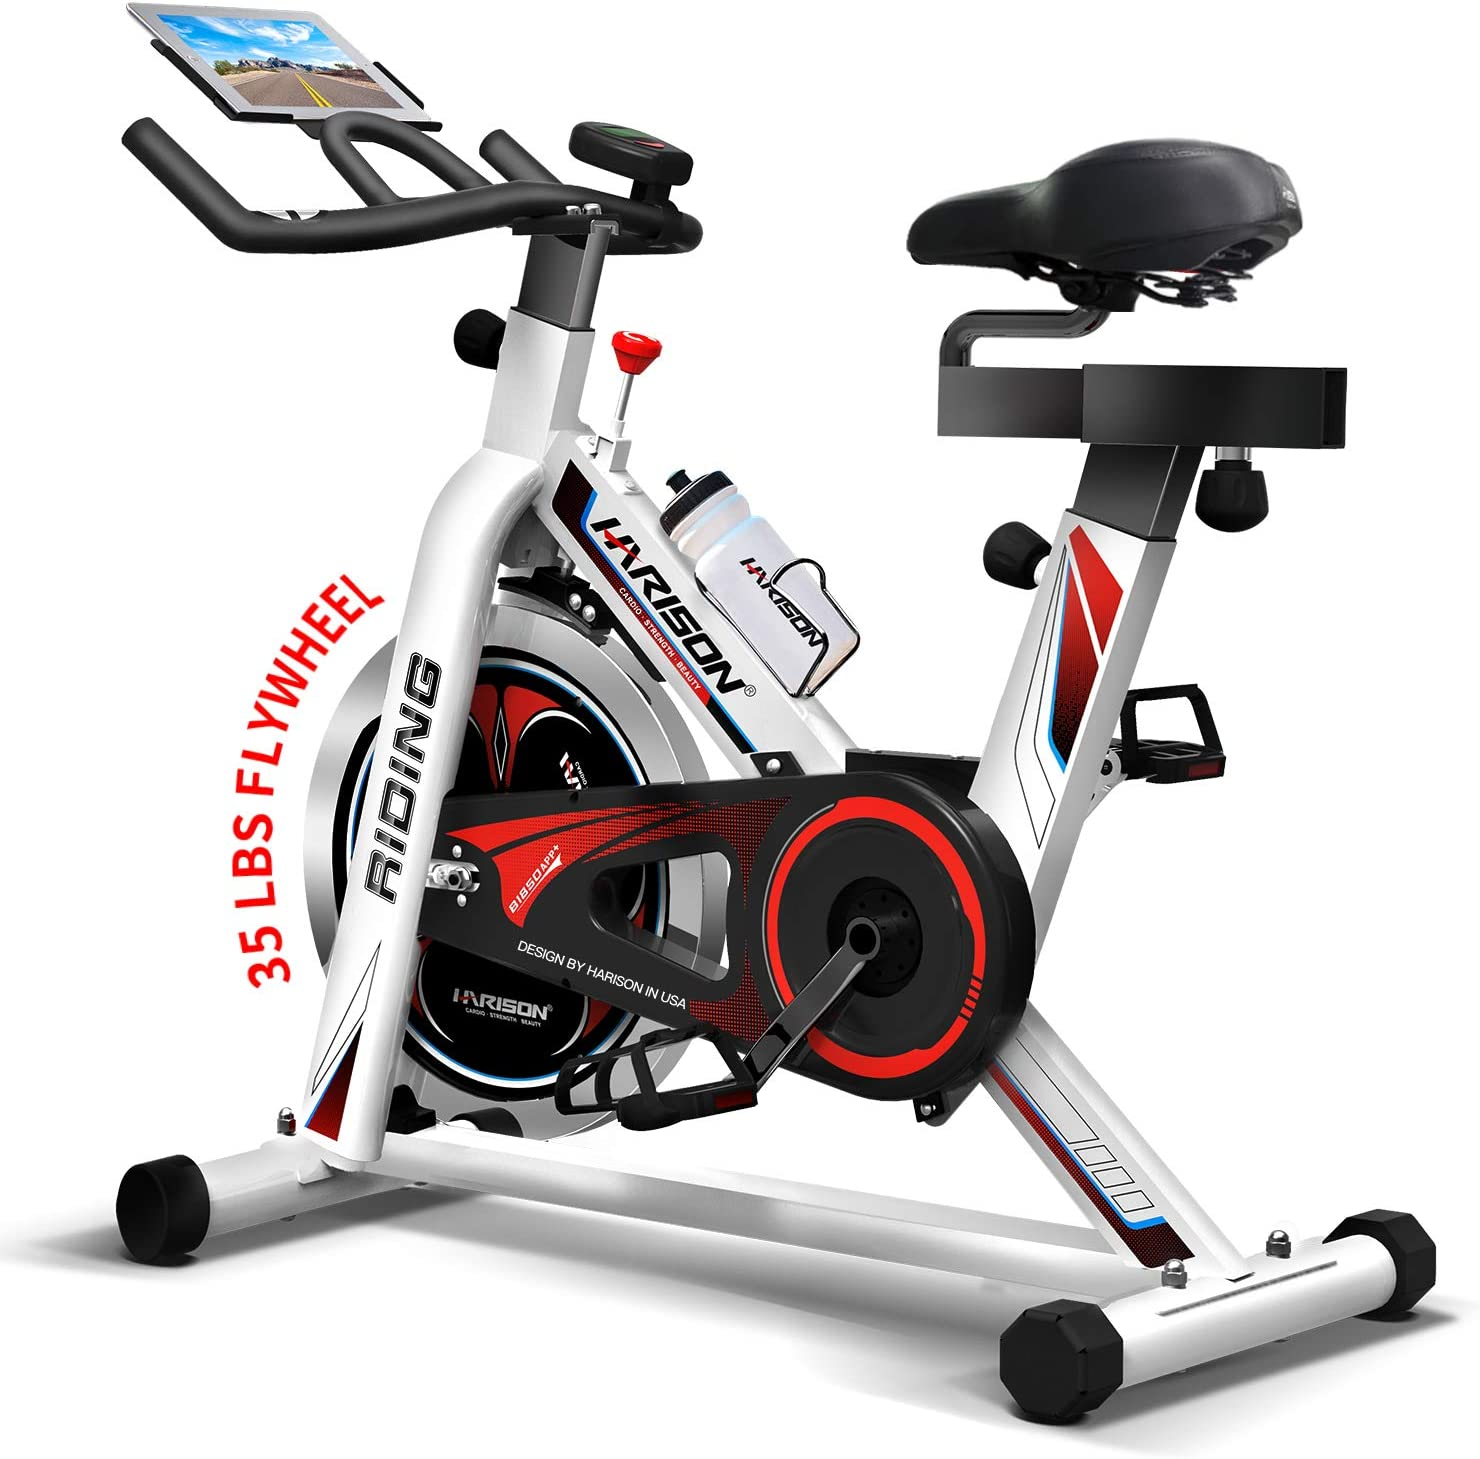 HARISON Exercise Spin Bike Indoor Cycling Bike Belt Drive with iPad Holder 35LBS Flywheel for Home Gym Cardio Fitness Workout (HR-1850 pro)